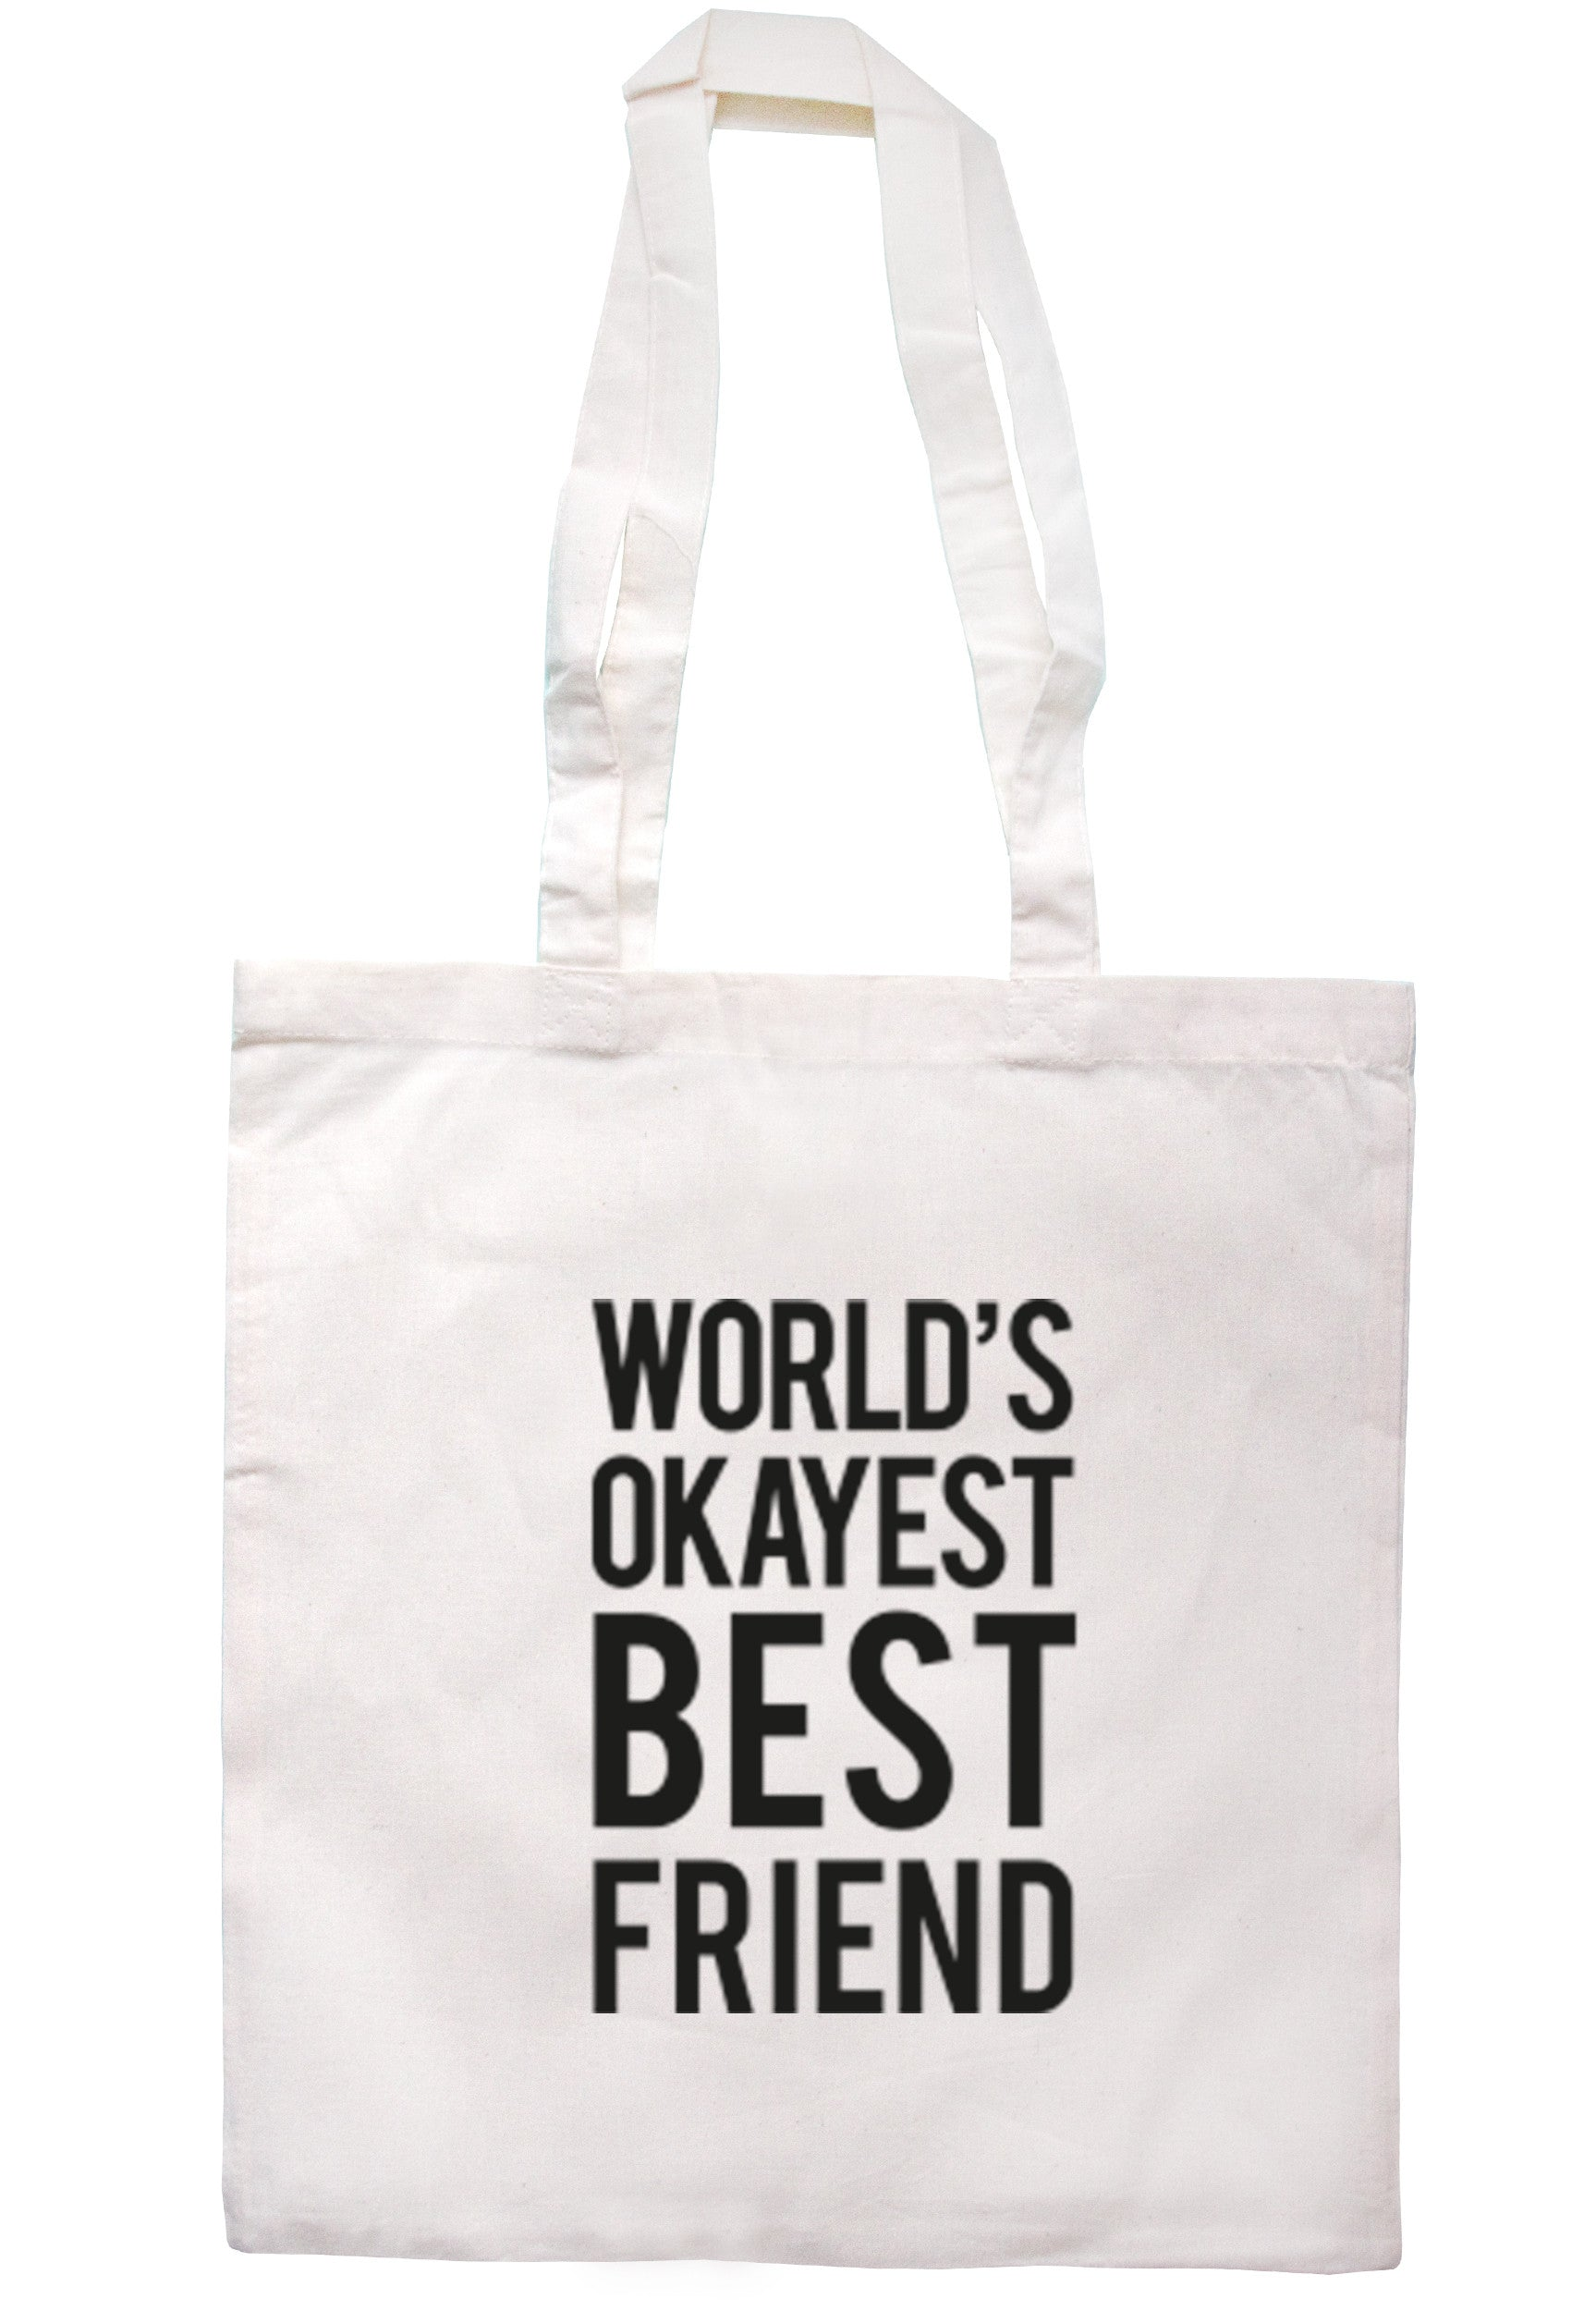 Worlds Okayest Best Friend Tote Bag TB0280 - Illustrated Identity Ltd.